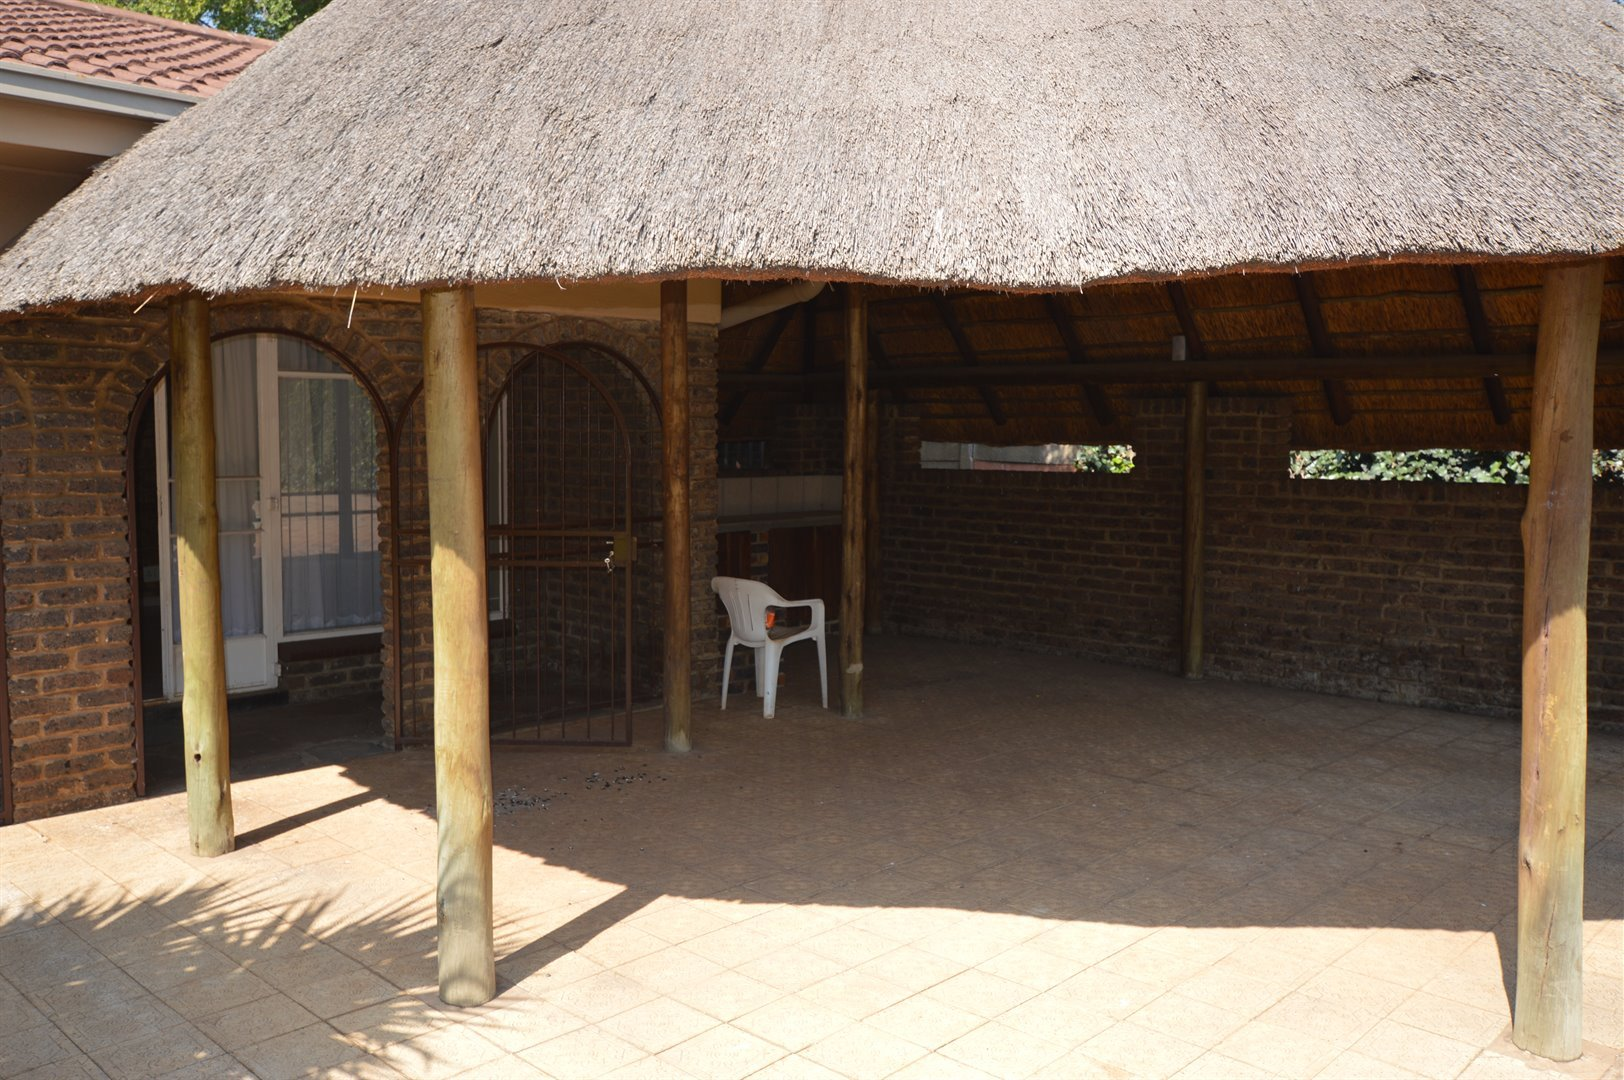 Vanderbijlpark Se 2 property for sale. Ref No: 13623209. Picture no 34